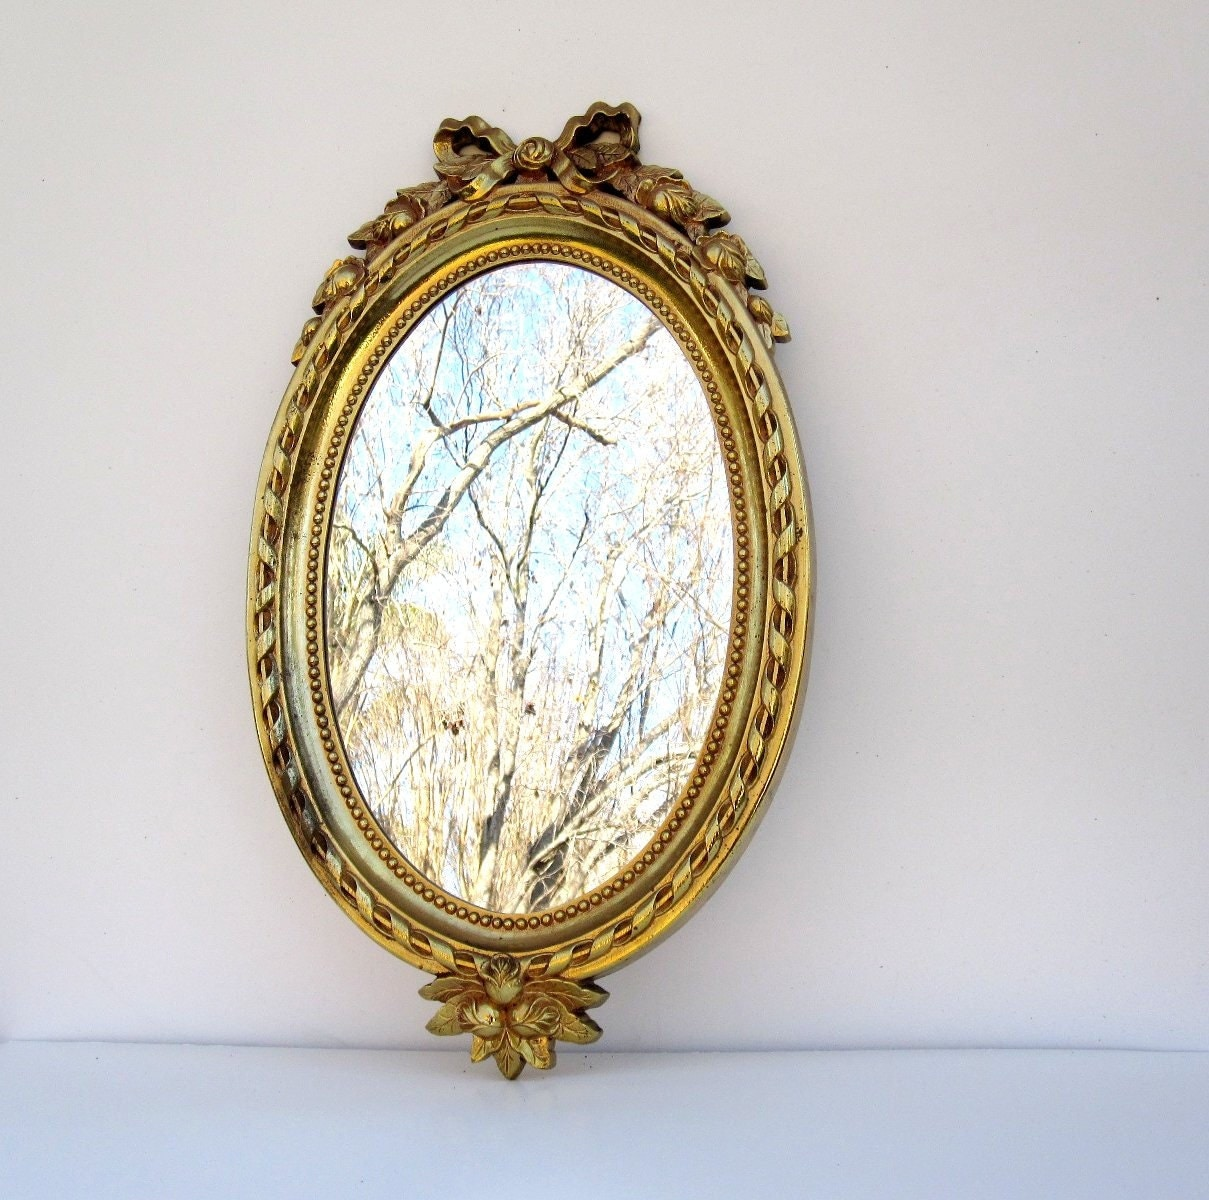 ornate oval mirror